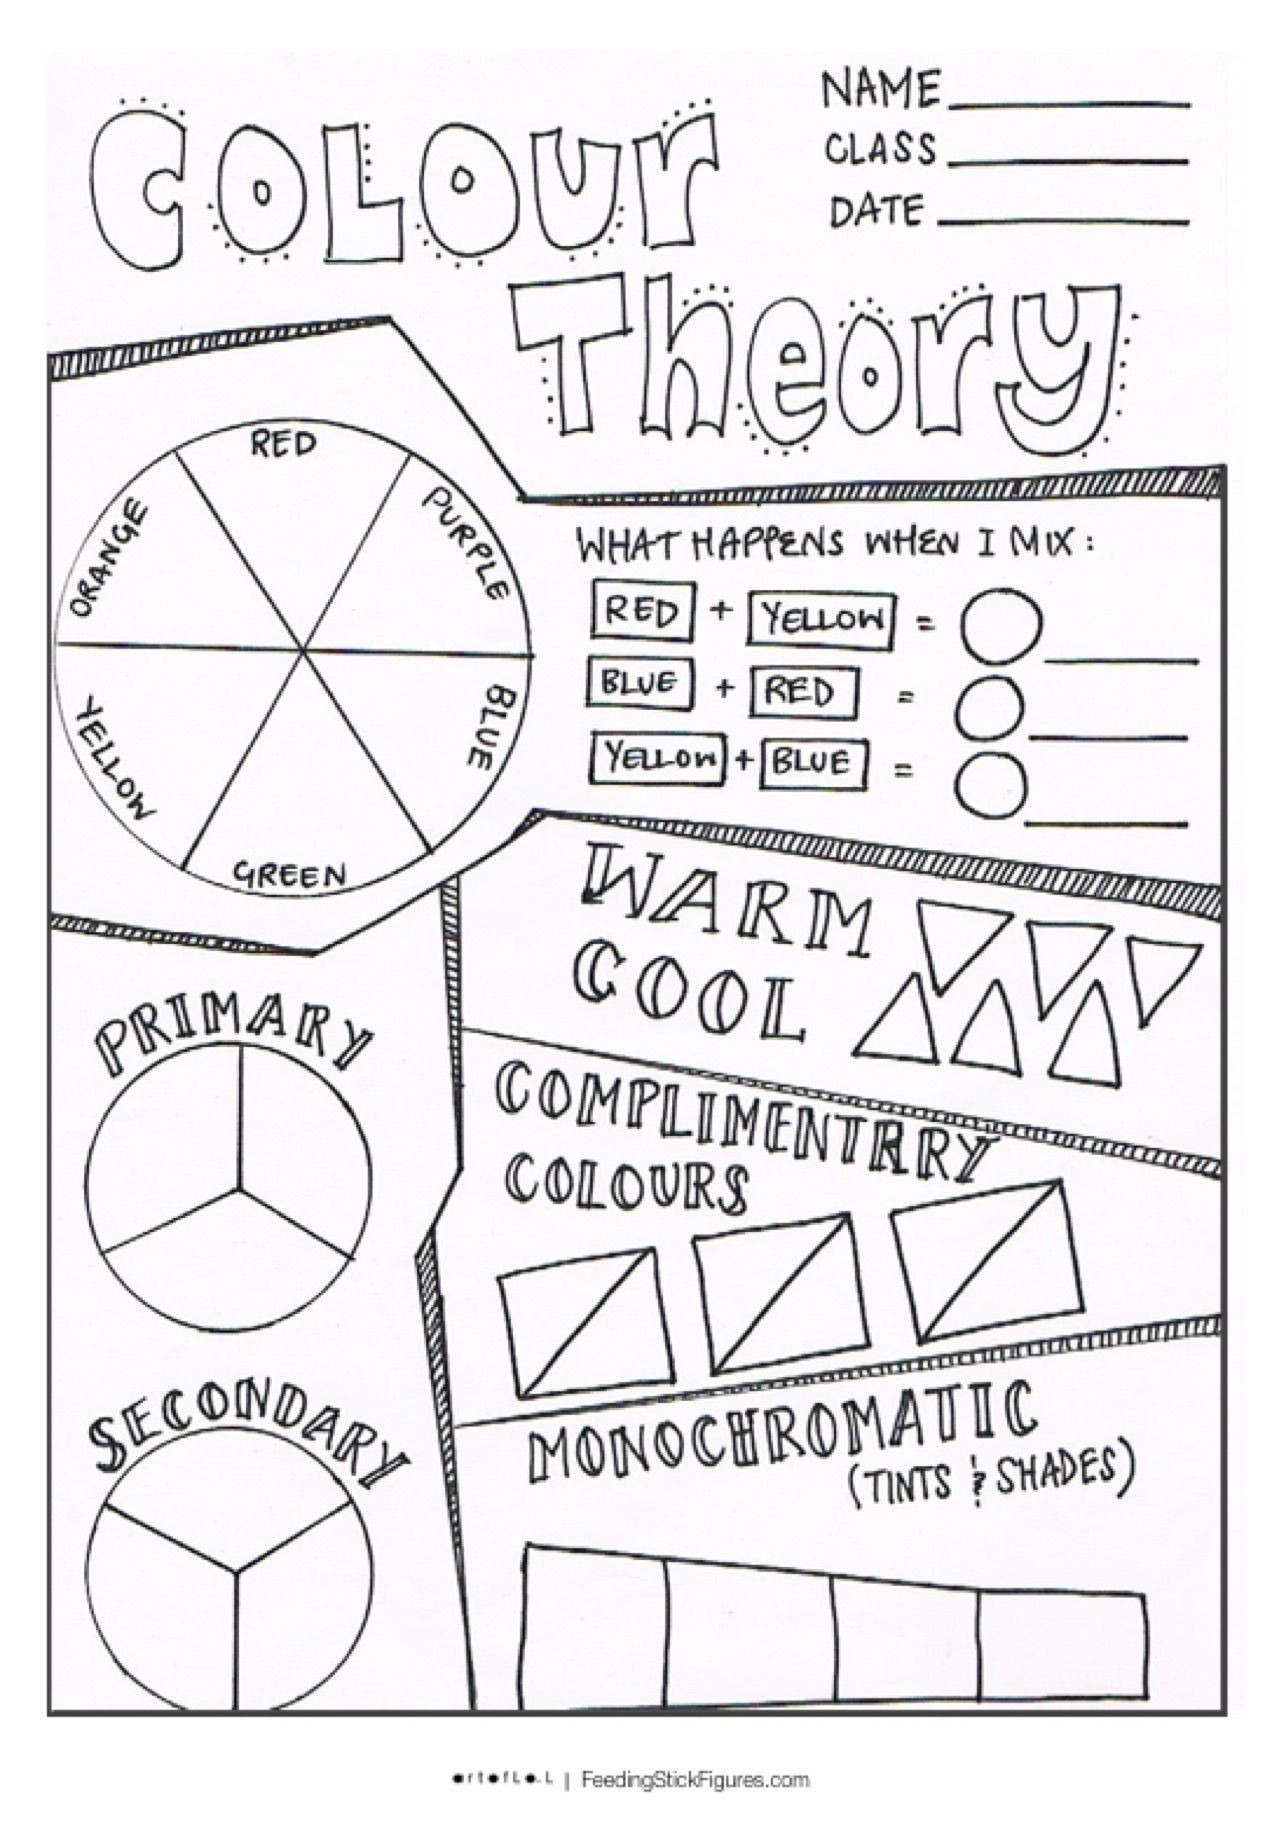 Color theory Worksheet Answer Key